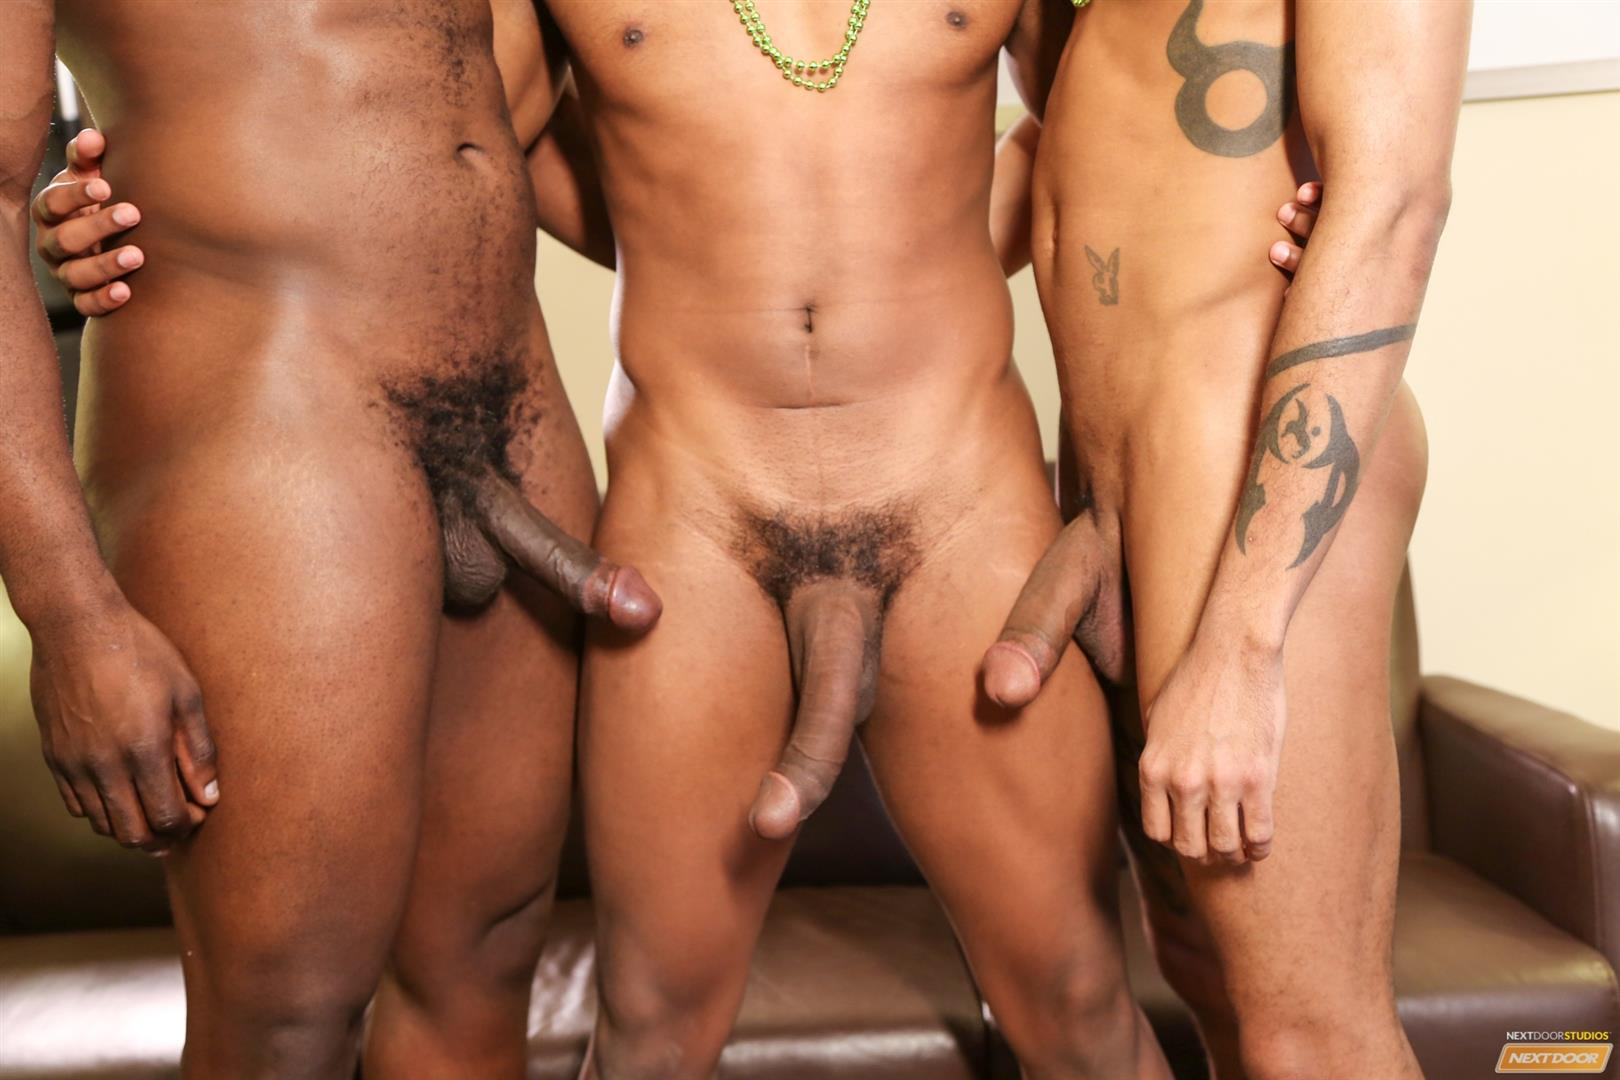 Amateur threesome 74 black suspect taken on 8